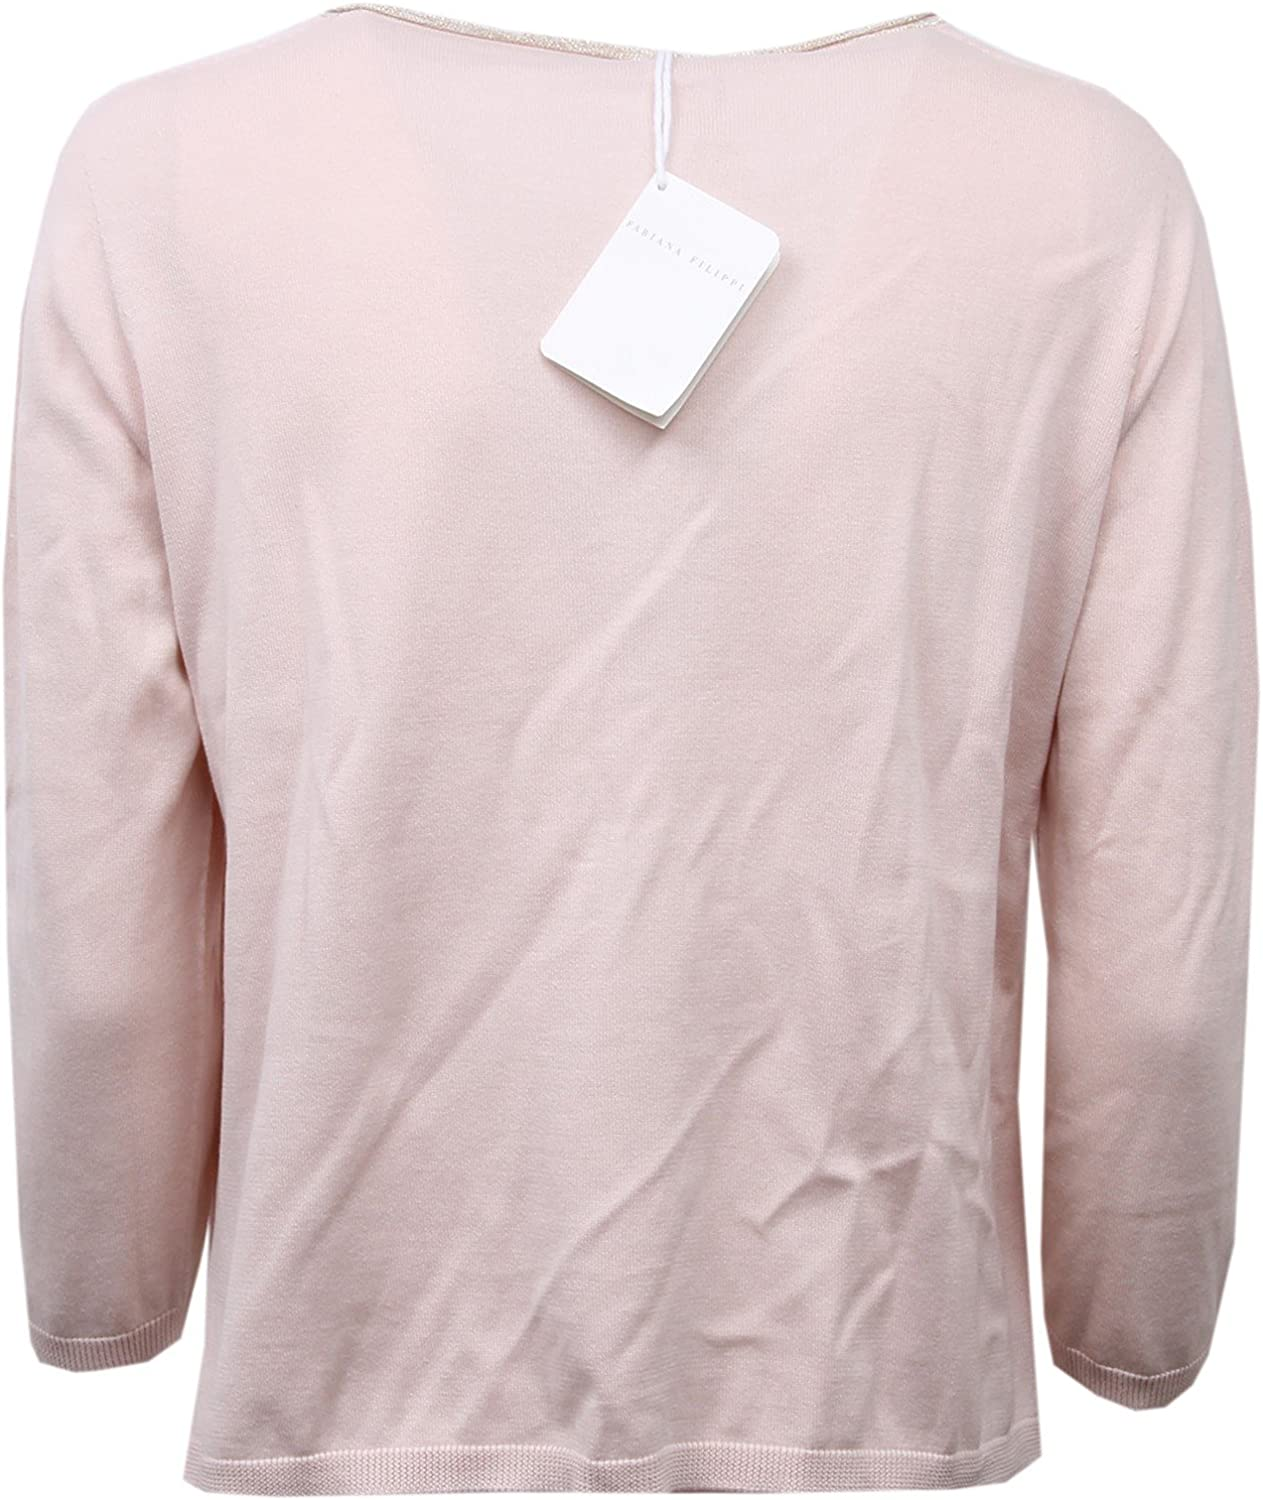 Fabiana Filippi D1352 Cardigan Donna Viscosa Sweater Woman Rosa Antico